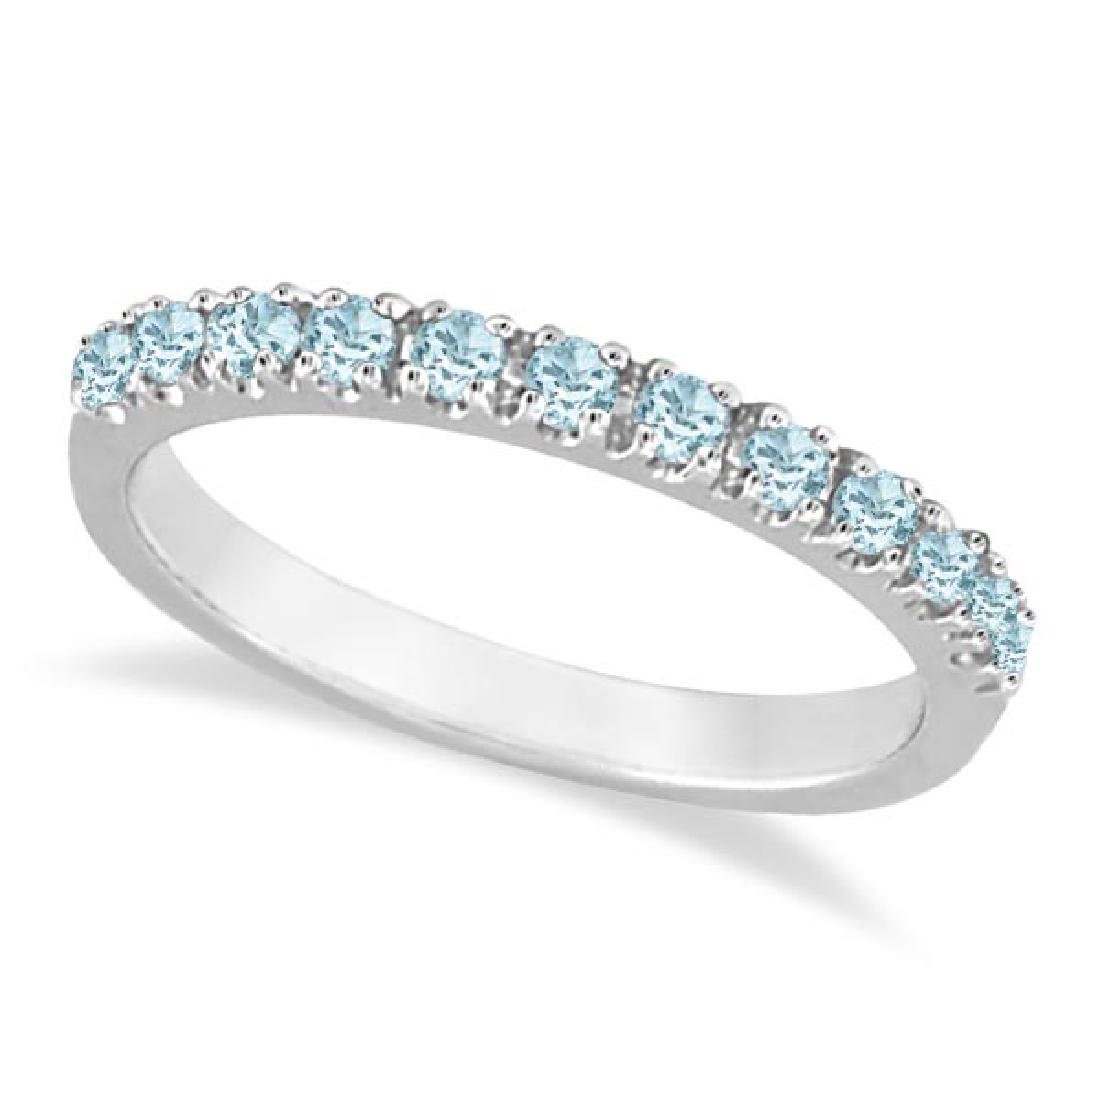 Aquamarine Stackable Ring Anniversary Band in 14k White